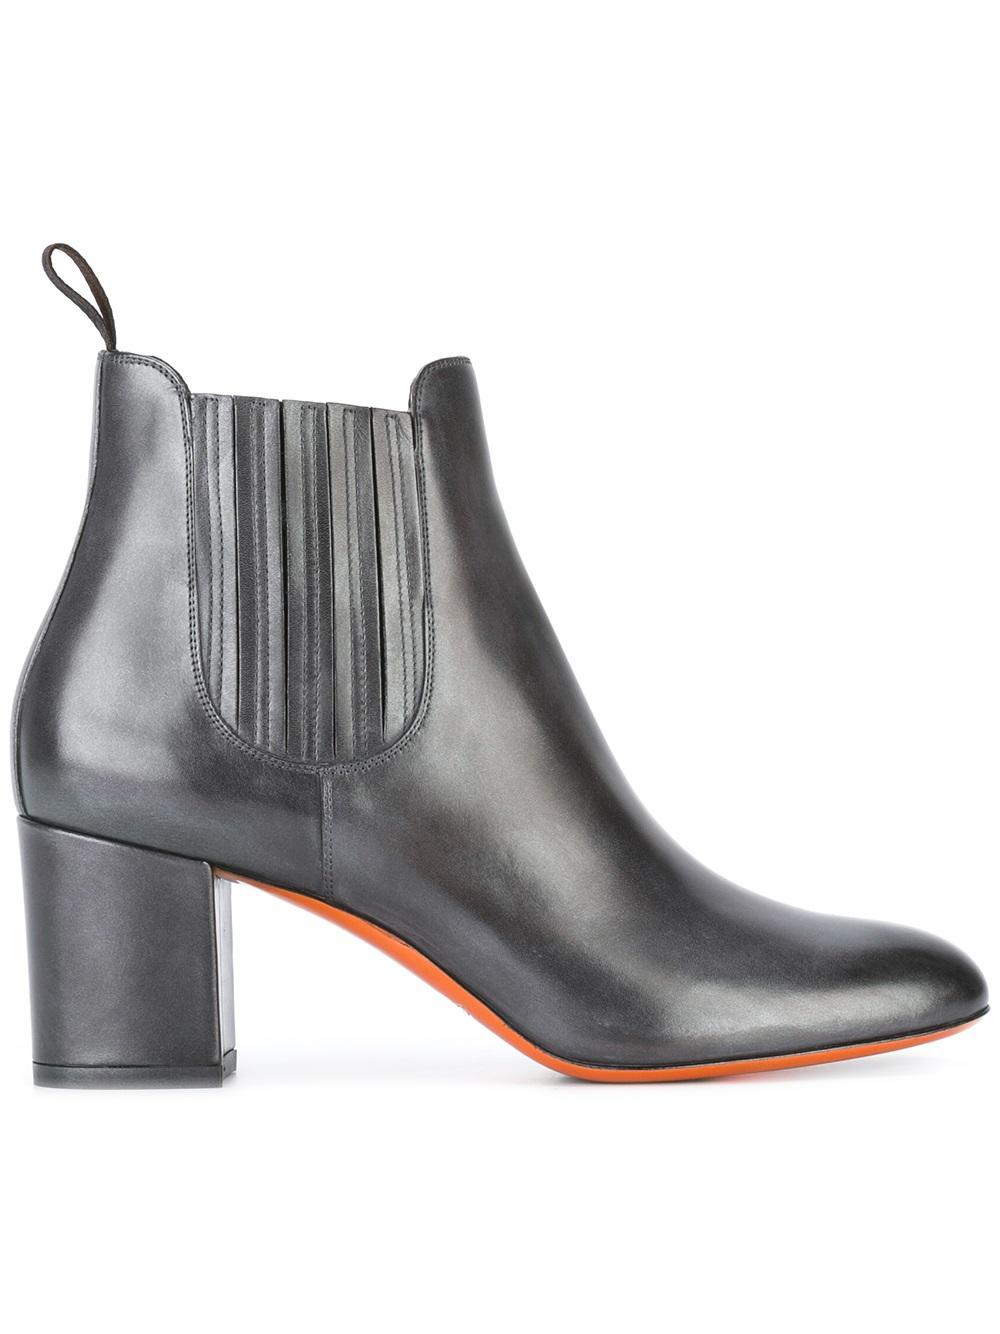 santoni chunky heel ankle boots in gray lyst